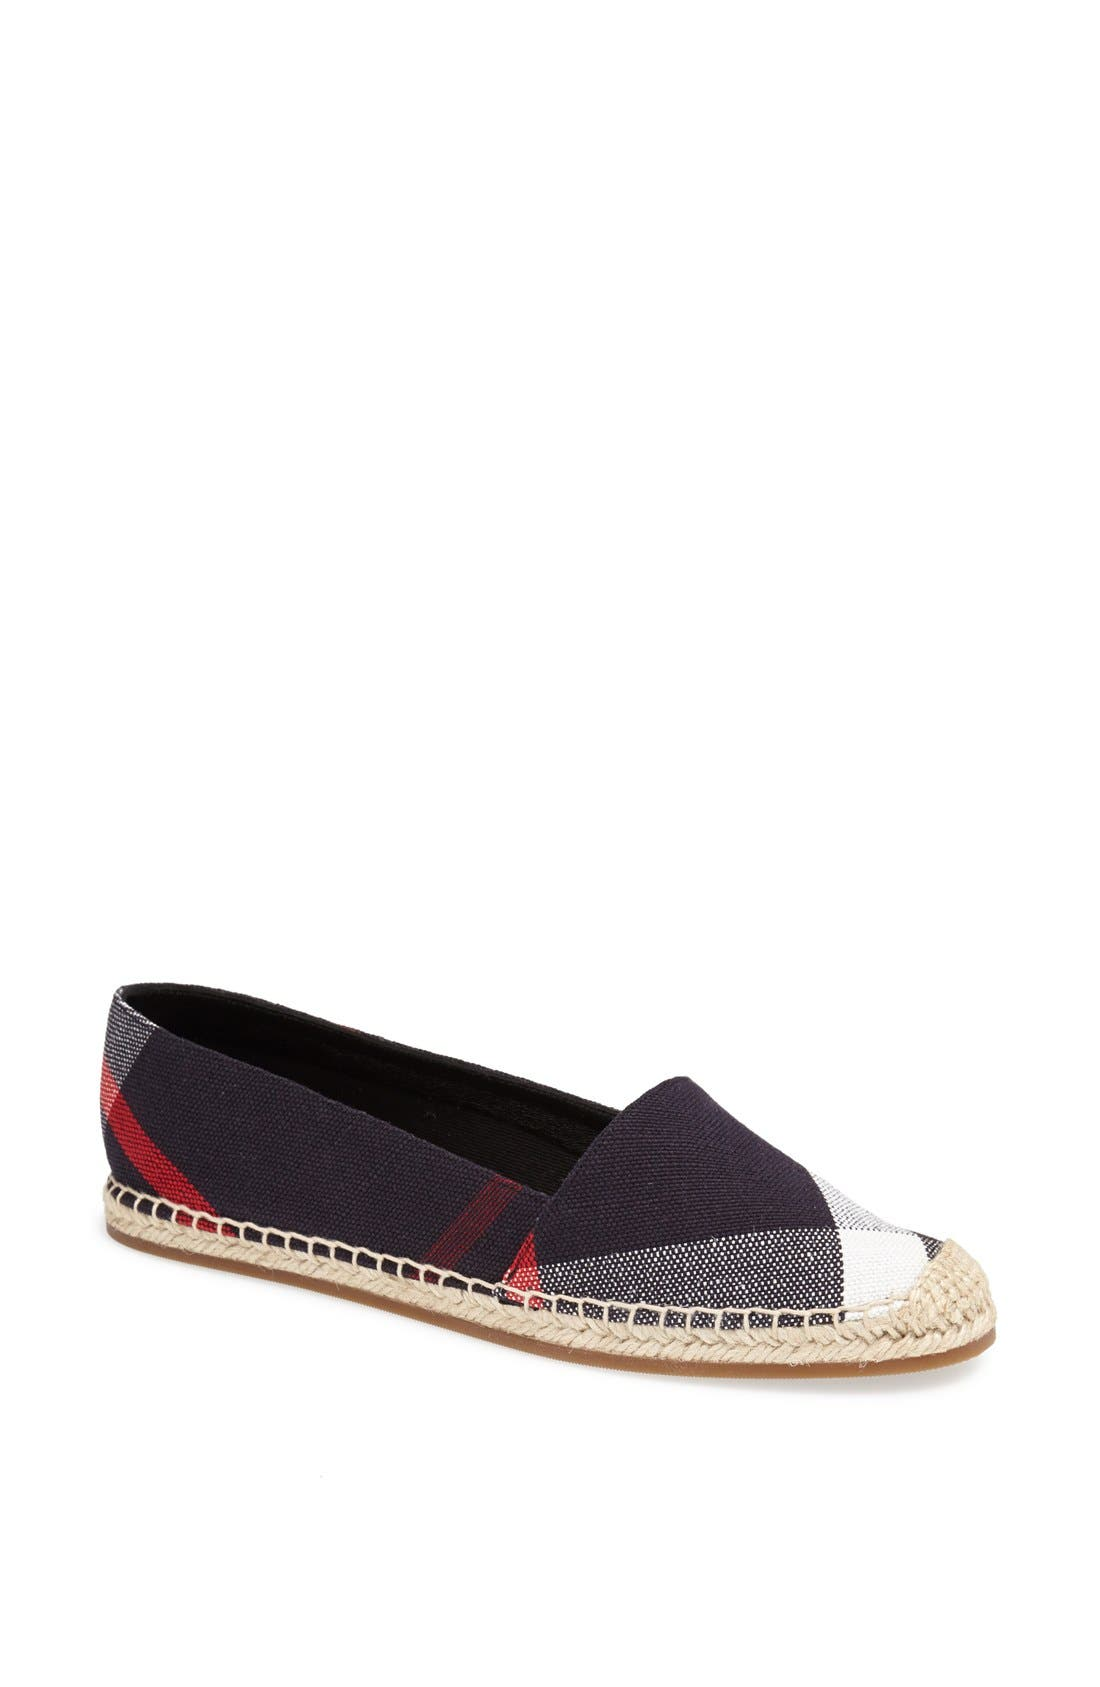 Alternate Image 1 Selected - Burberry Hodgeson Check Print Espadrille Flat (Women)